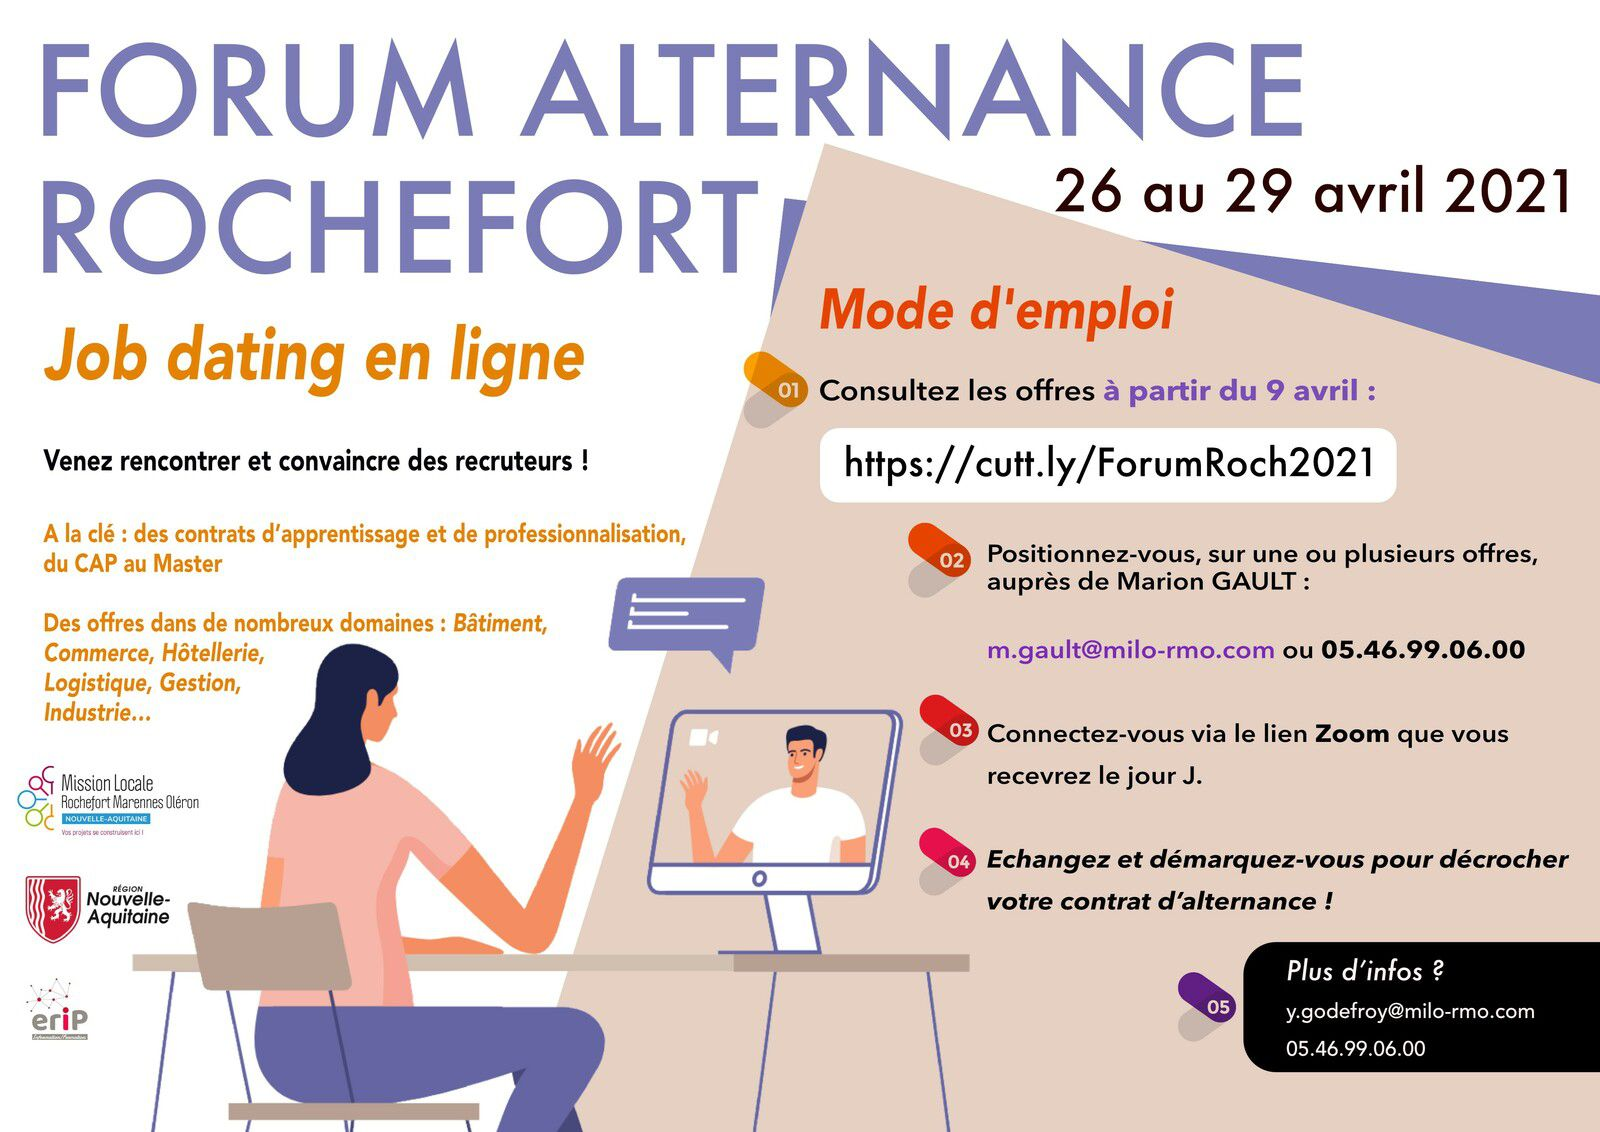 FORUM ALTERNANCE ROCHEFORT DU 26 AU 29 AVRIL